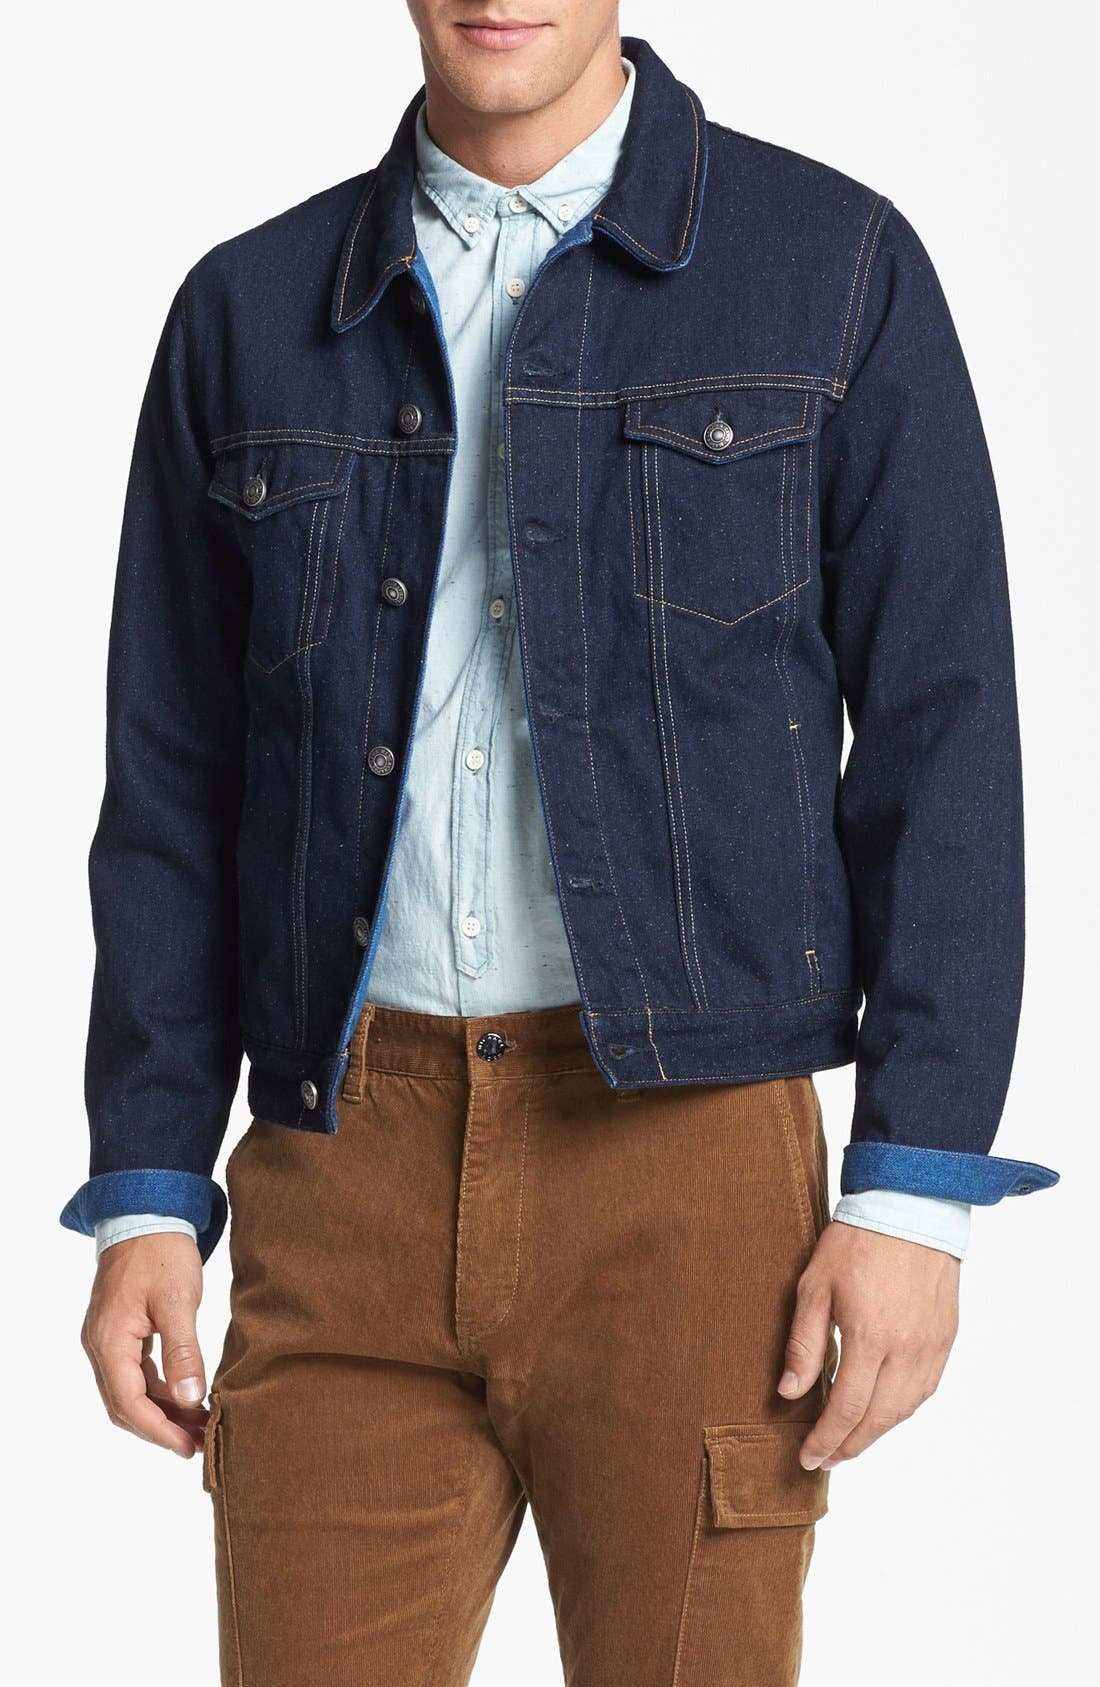 Alternate Image 1 Selected - Levi's® Made & Crafted™ Denim Jacket (Indigo)